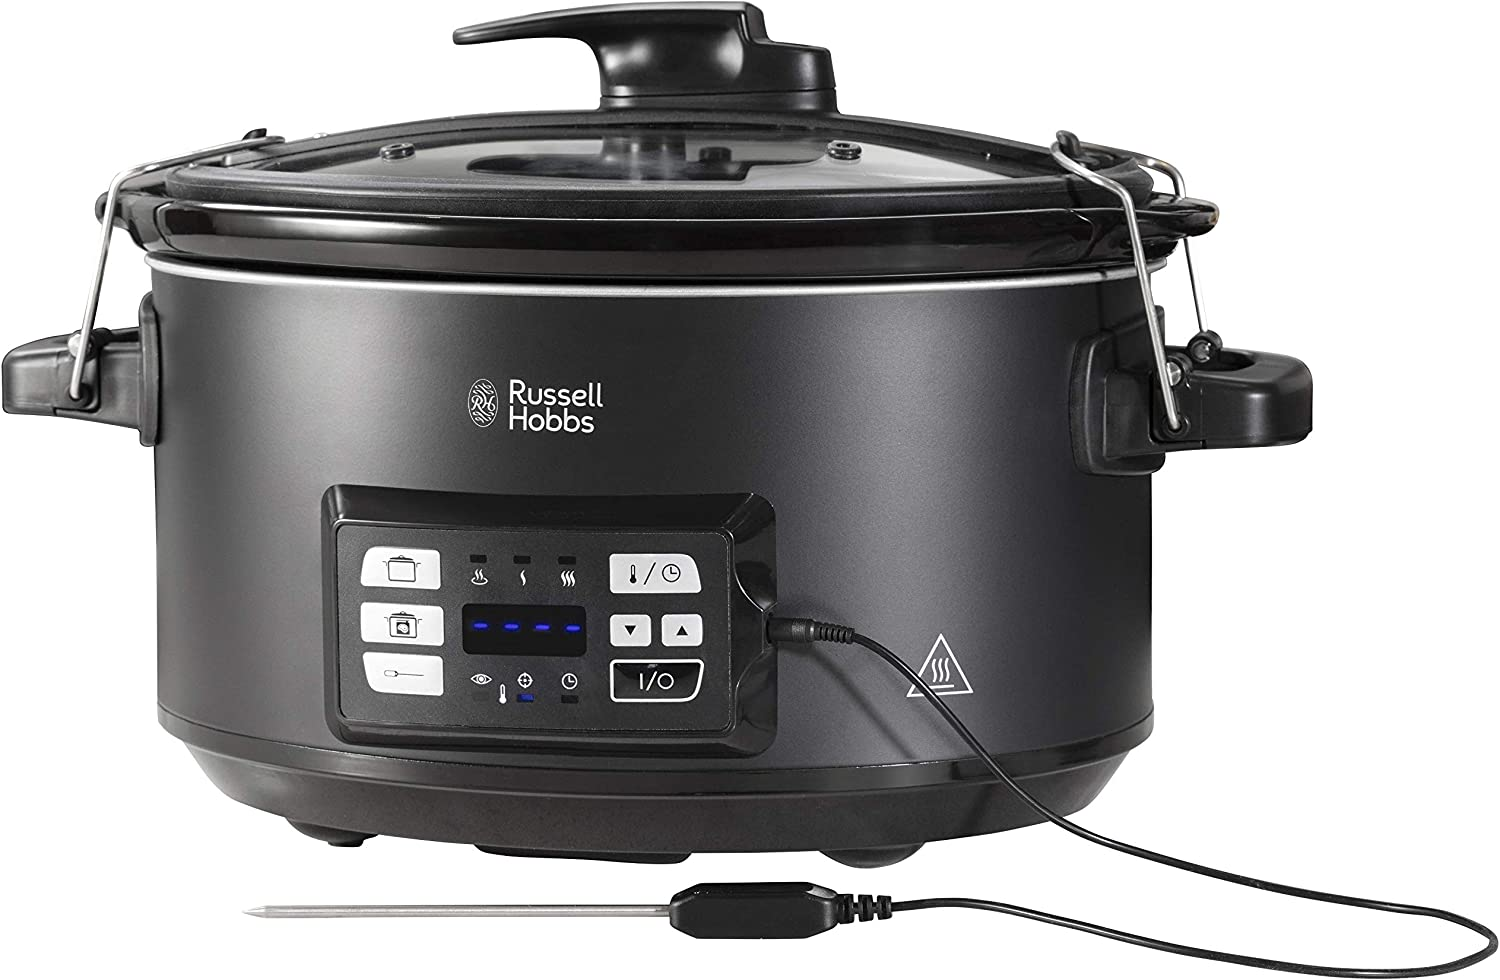 Russell Hobbs 25630 Slow Cooker and Sous Vide Water Bath, Integrated Digital Display and Rack Frame Included, 6.5 Litre, Black